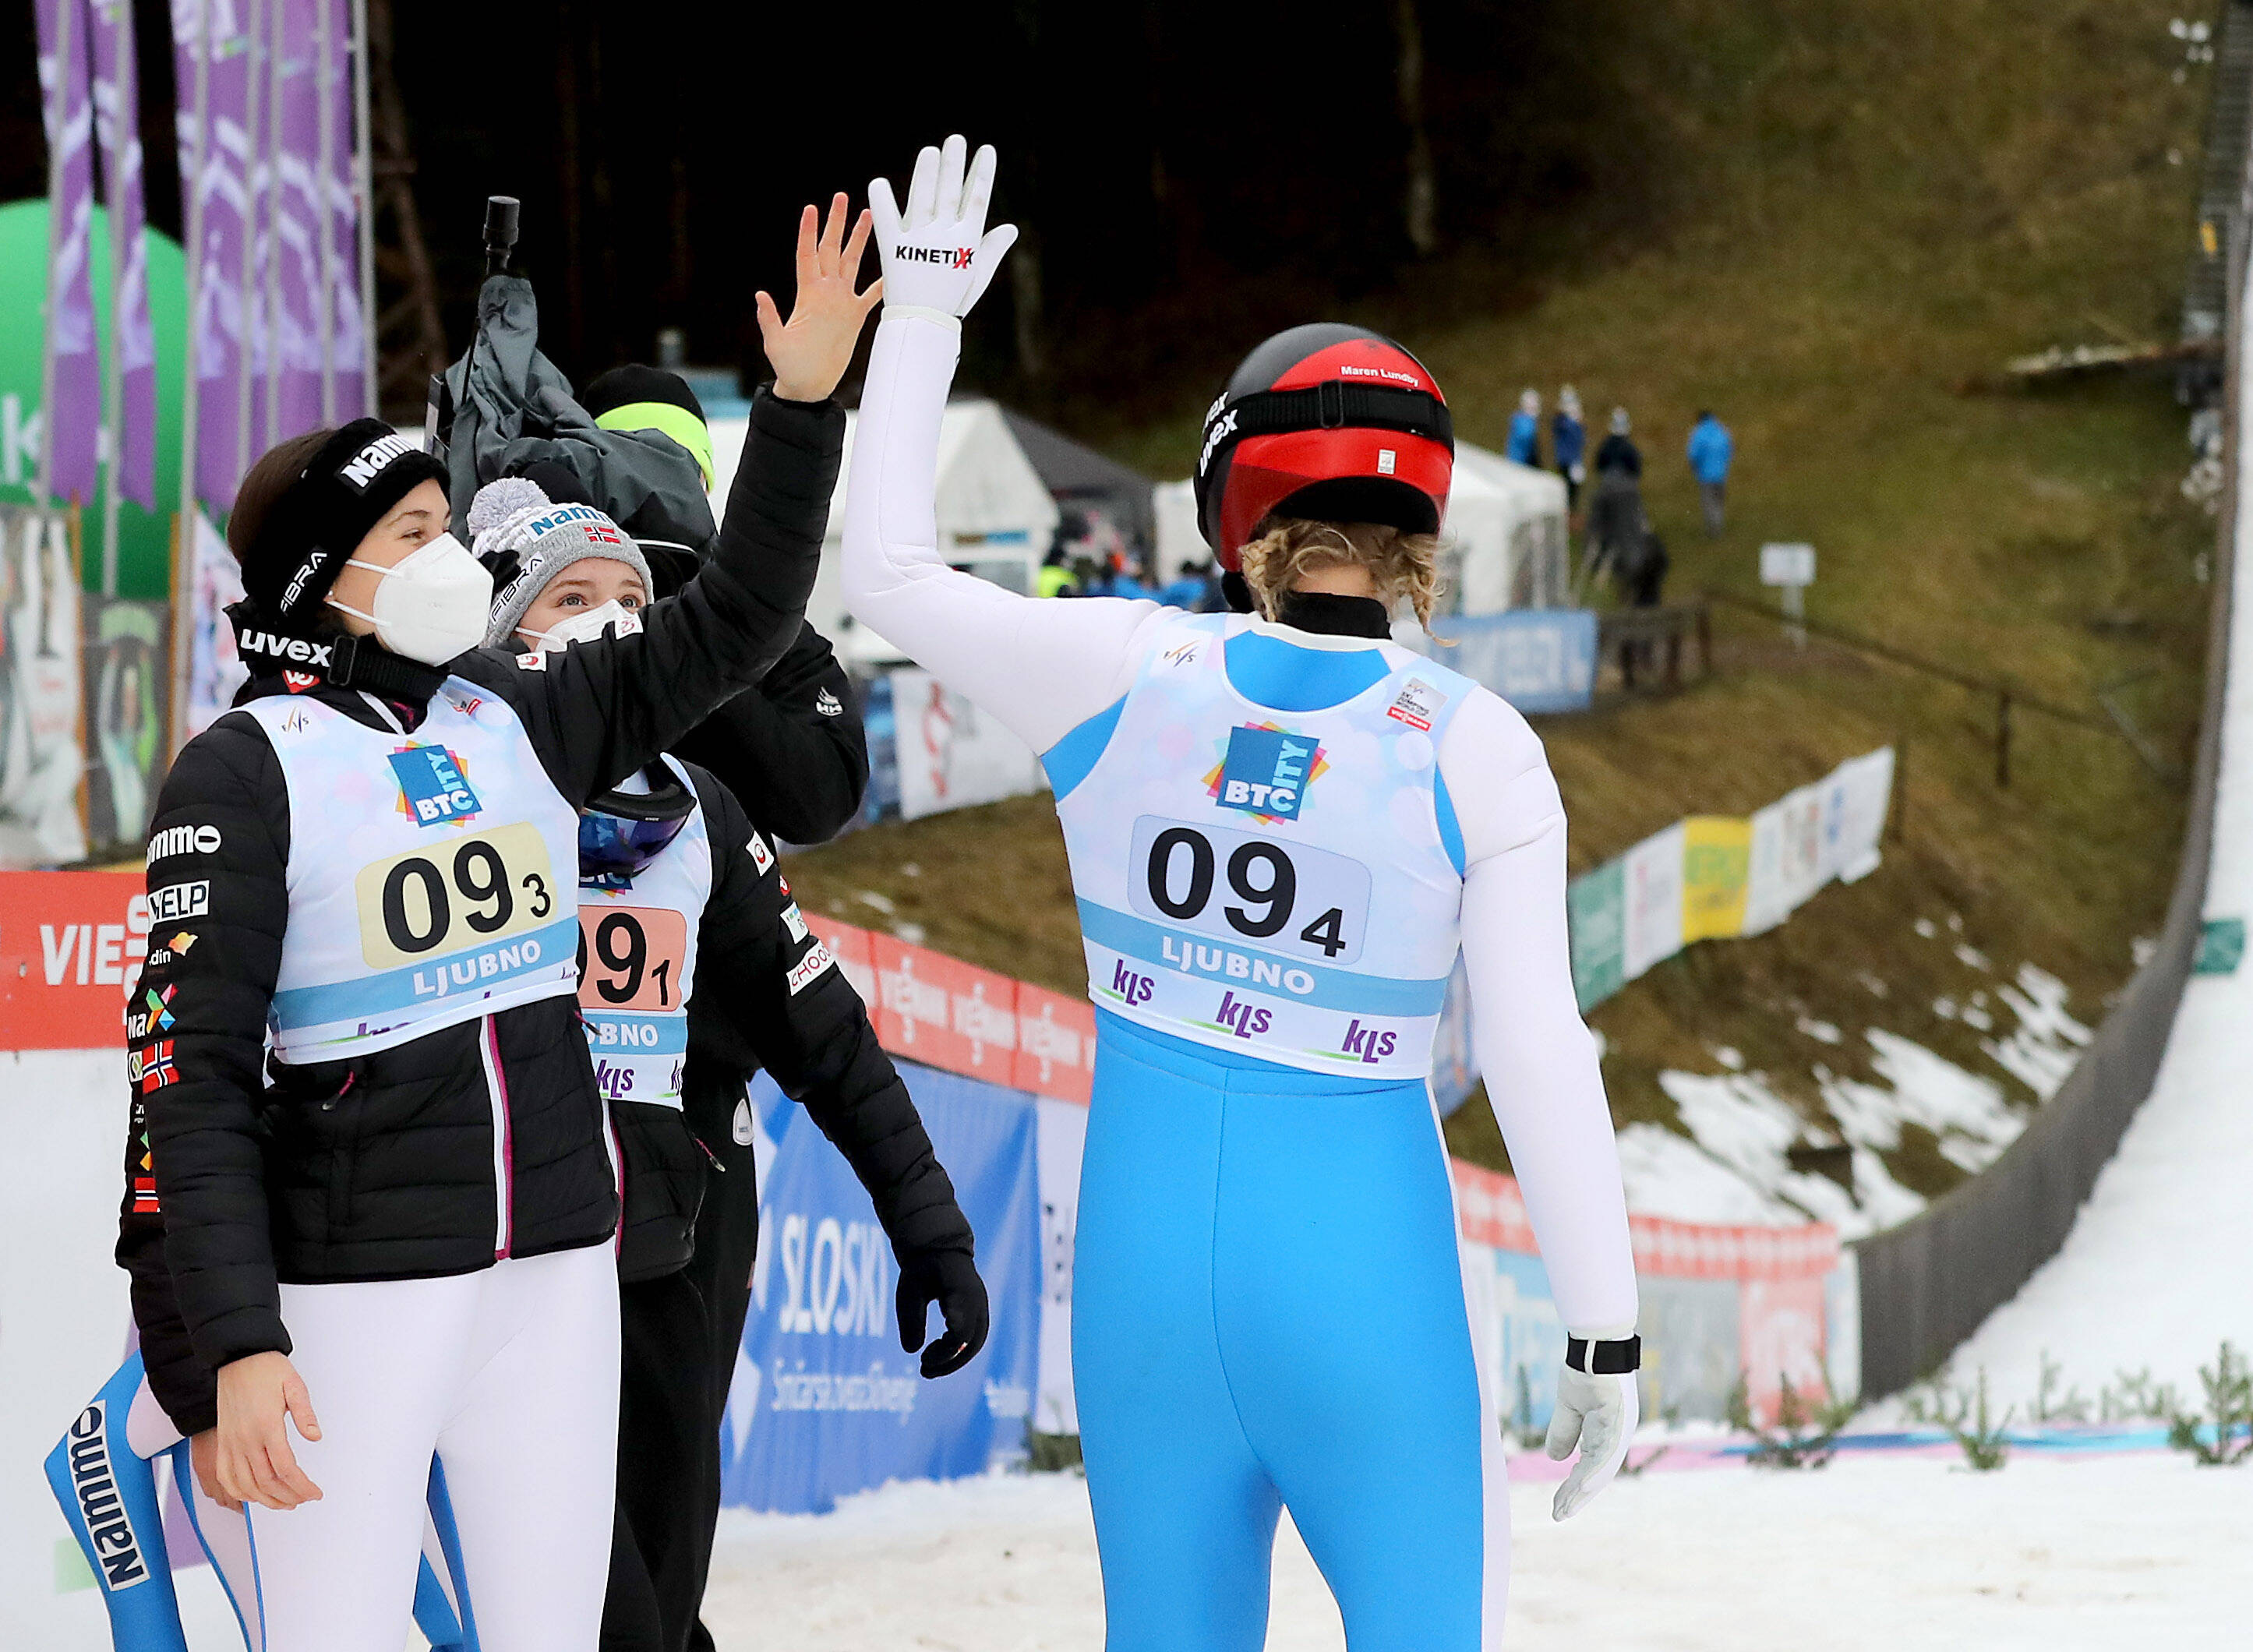 Team Skijumping in Lahti